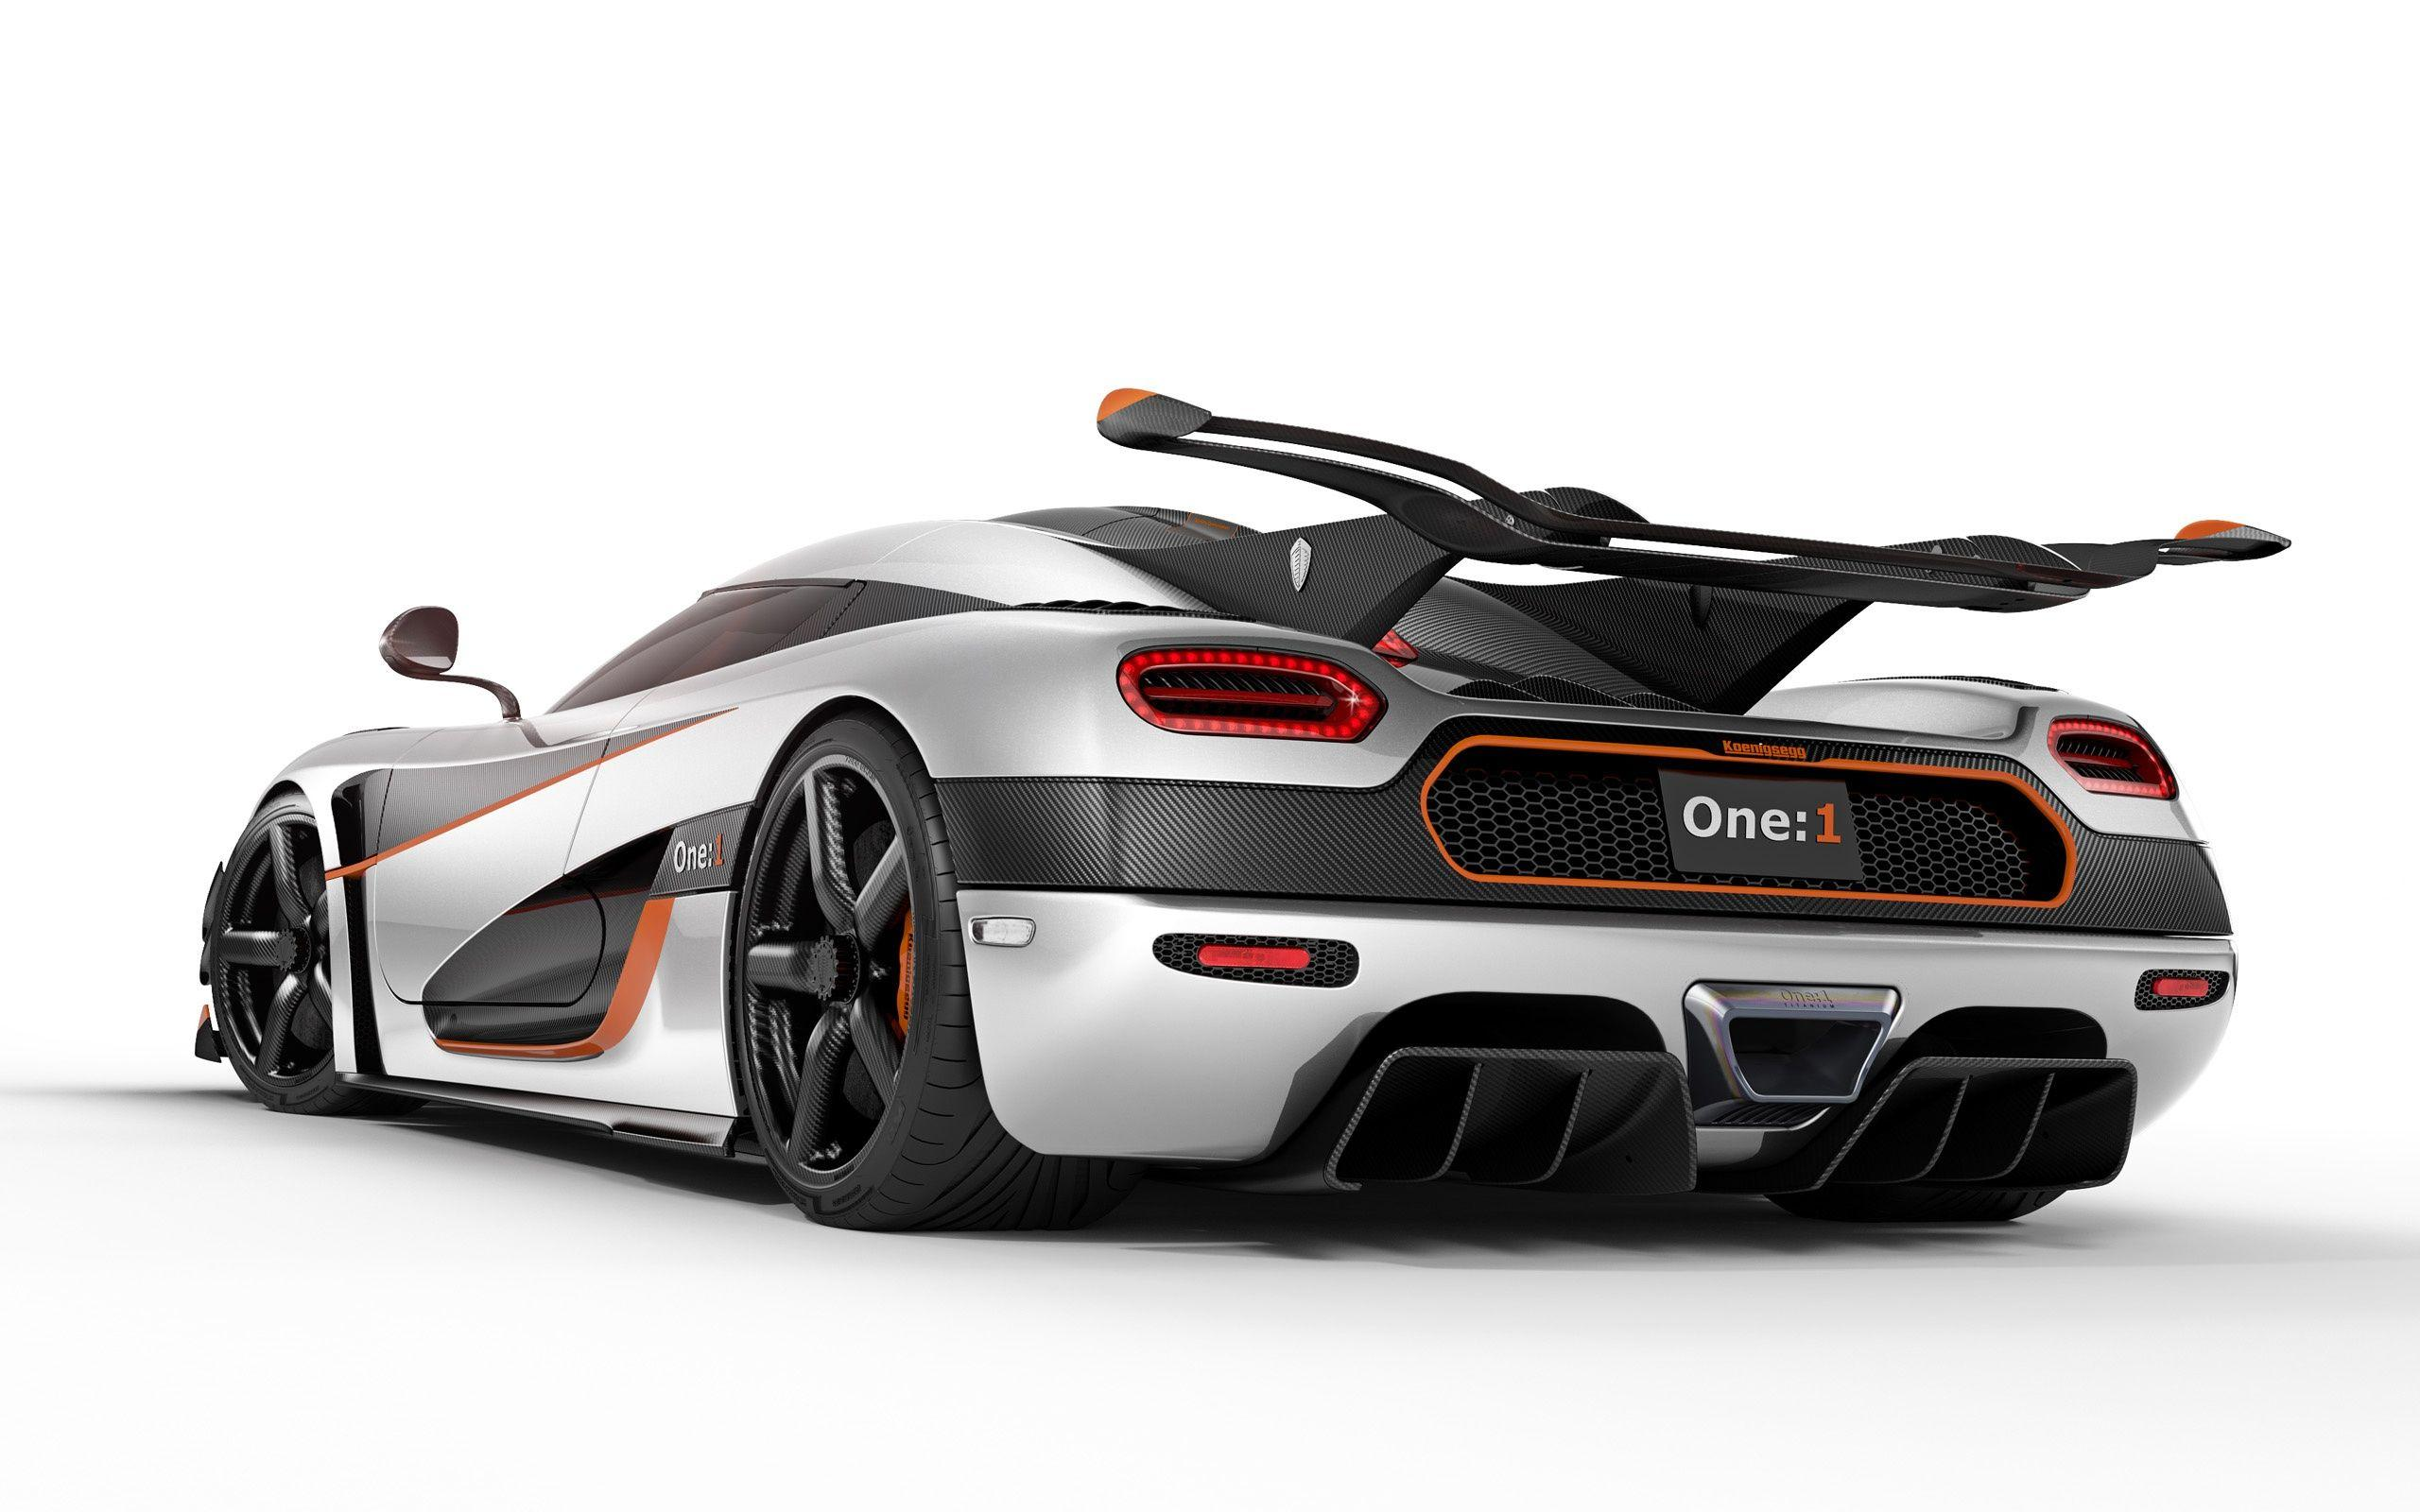 2014 Koenigsegg Agera One 1 2 Wallpapers